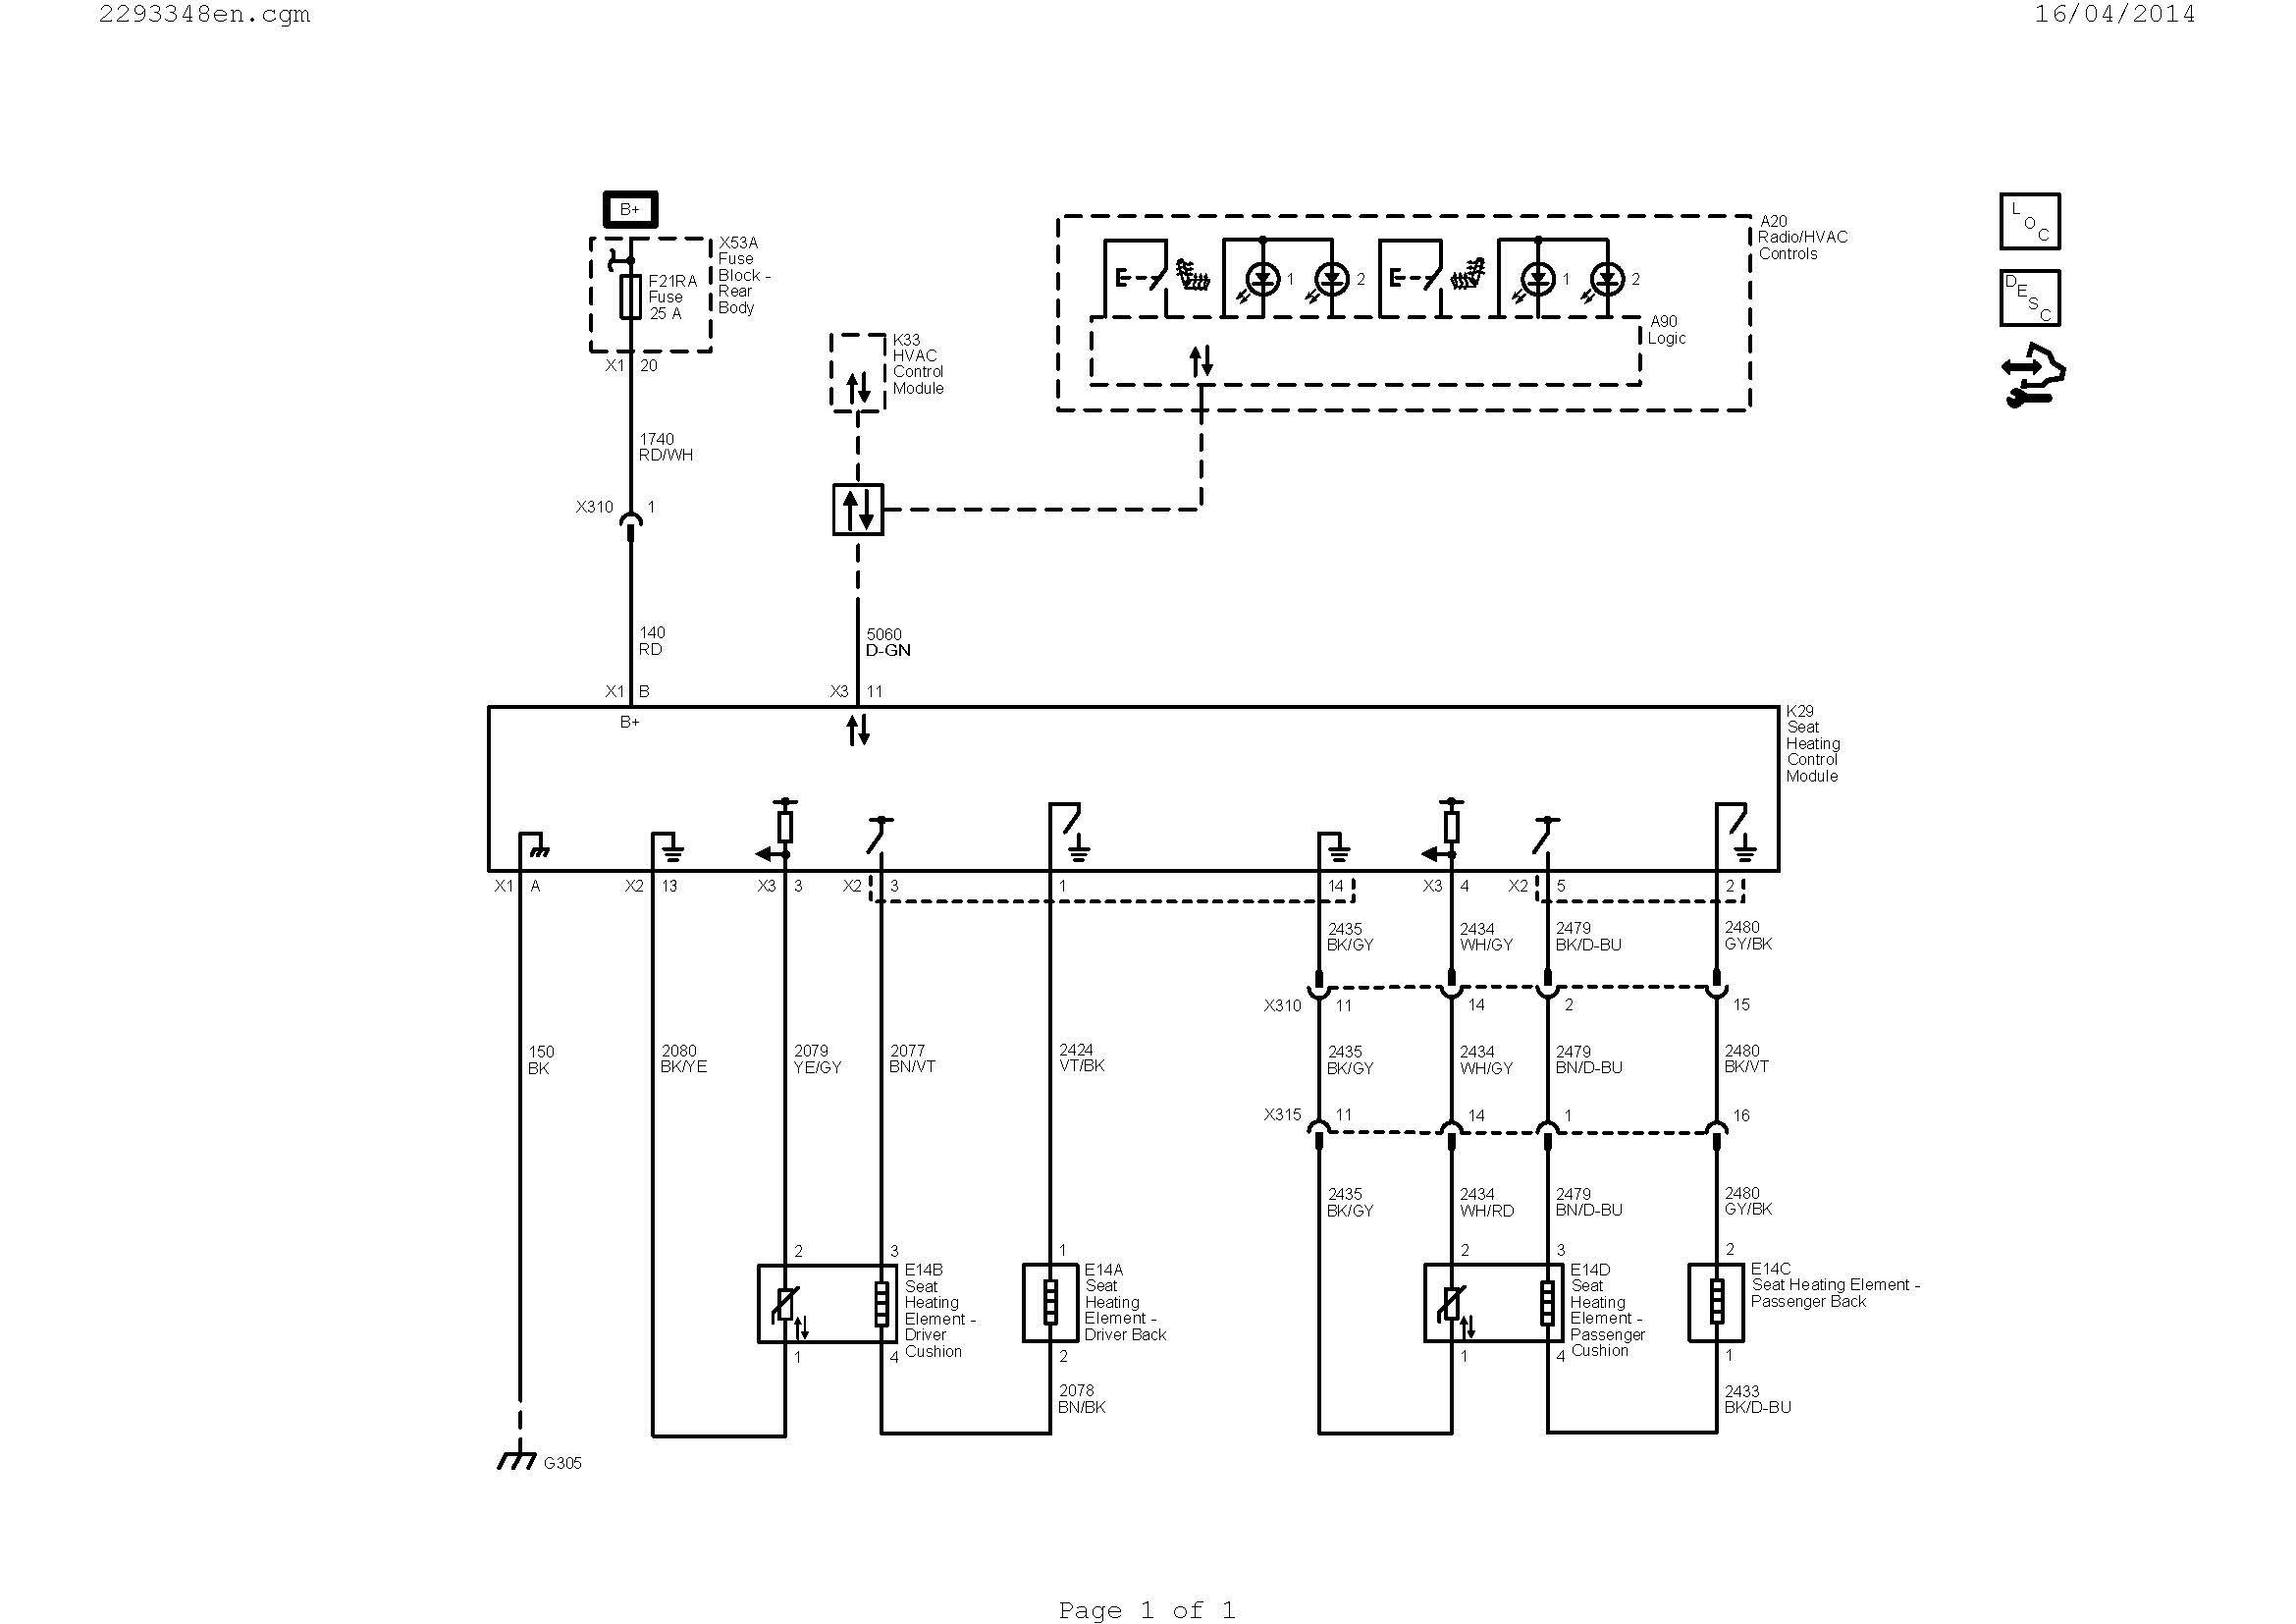 ac wiring diagram Download-Wiring A Ac Thermostat Diagram New Wiring Diagram Ac Valid Hvac Diagram Best Hvac Diagram 0d – Wire 20-e